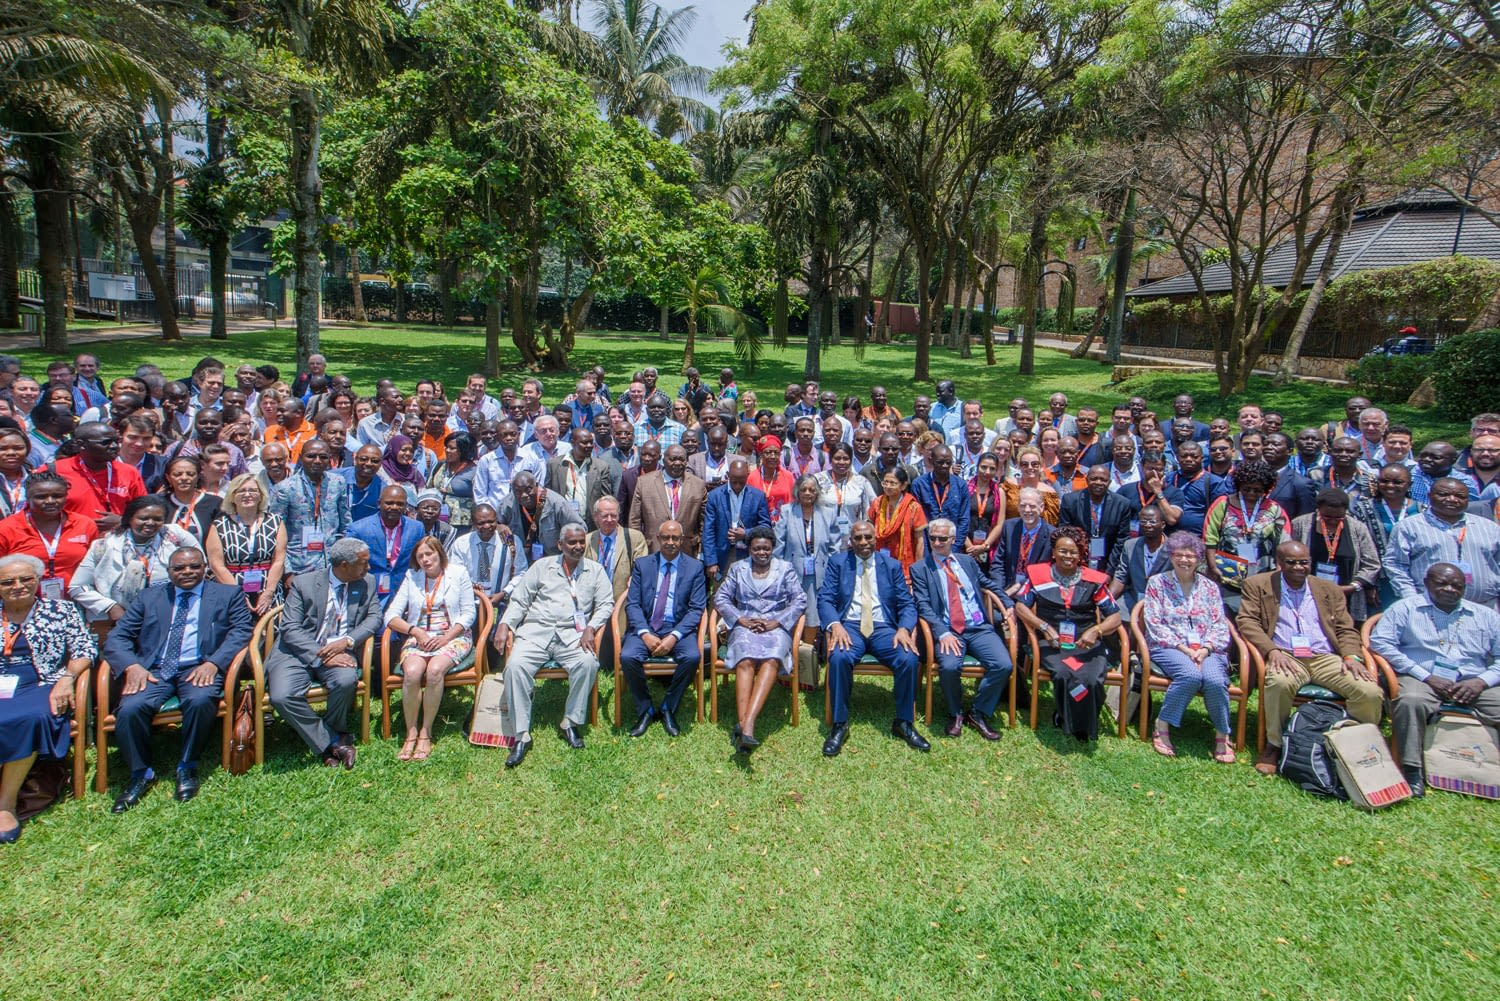 Uganda's Prime Minister, The Rt. Hon. Dr Ruhakana Rugunda and government delegation joins participants in a group photo.